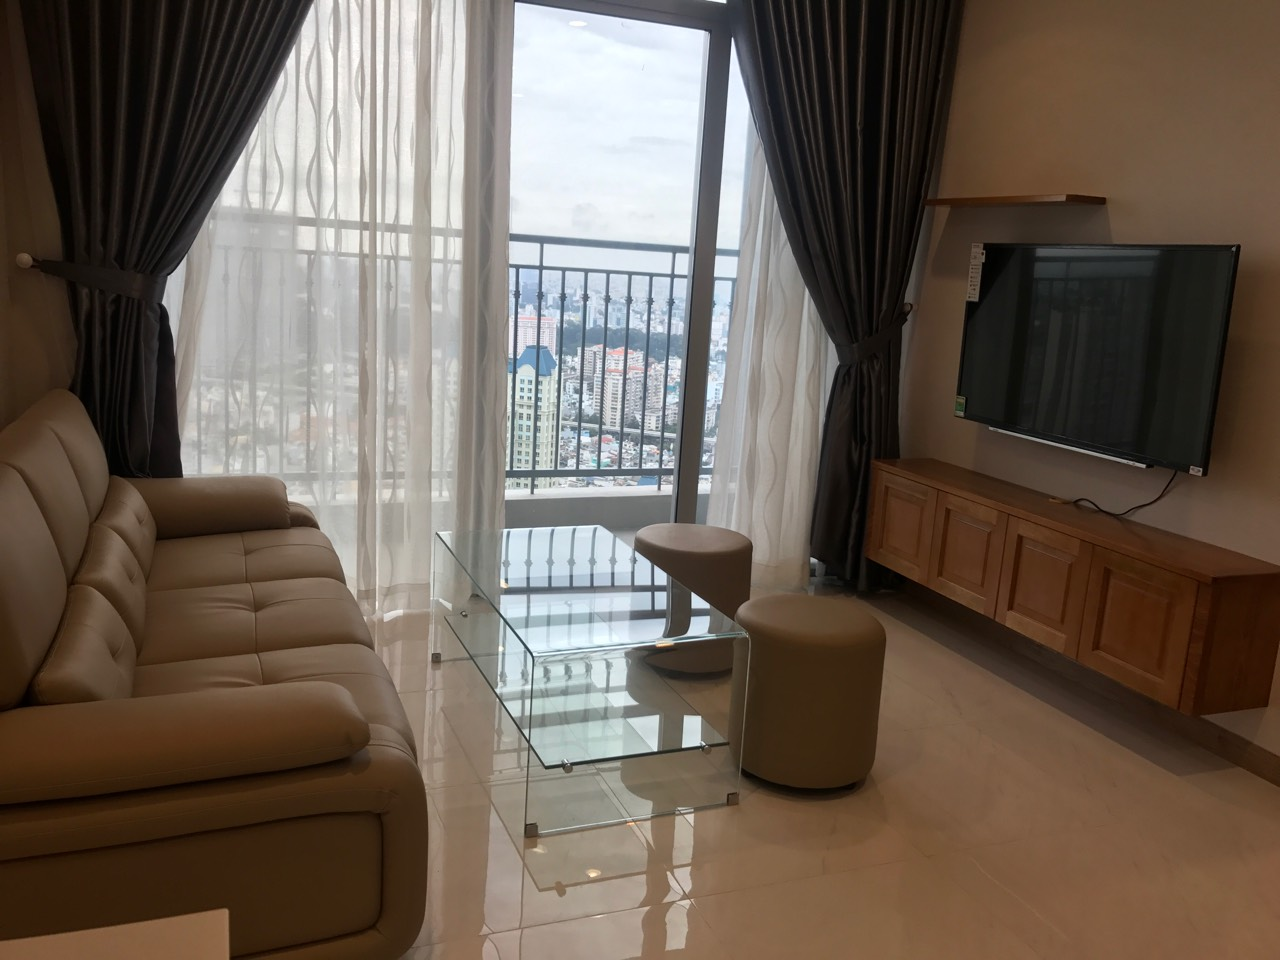 vinhomes central park apartment for rent in binh thanh district hcmc BT105L4410 (4)